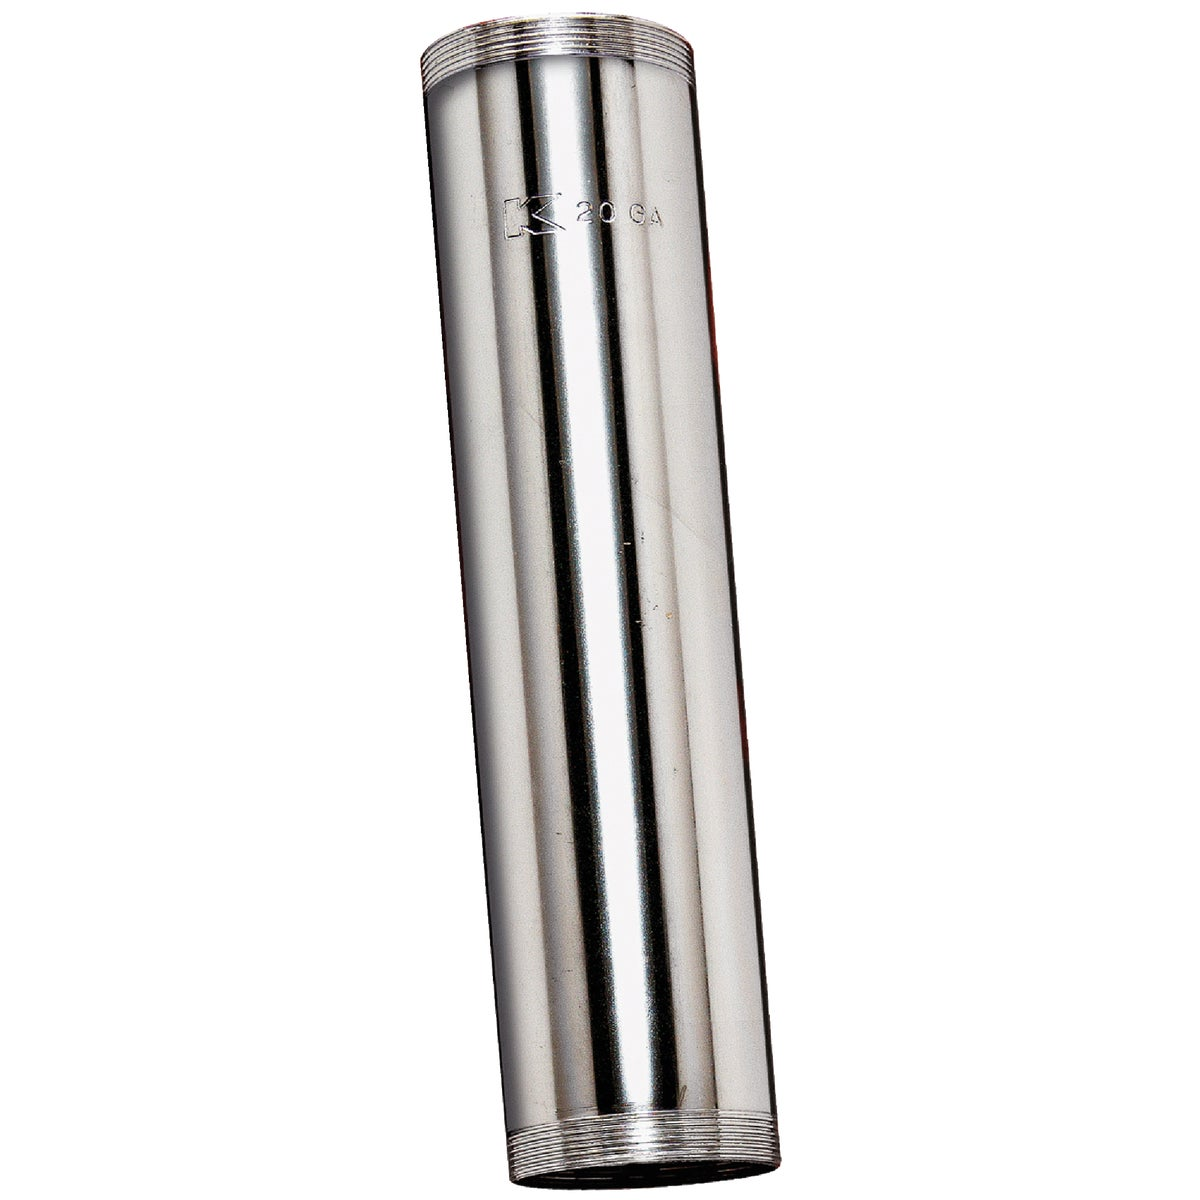 1-1/4X6 THREADED TUBE - 403968 by Plumb Pak/keeney Mfg